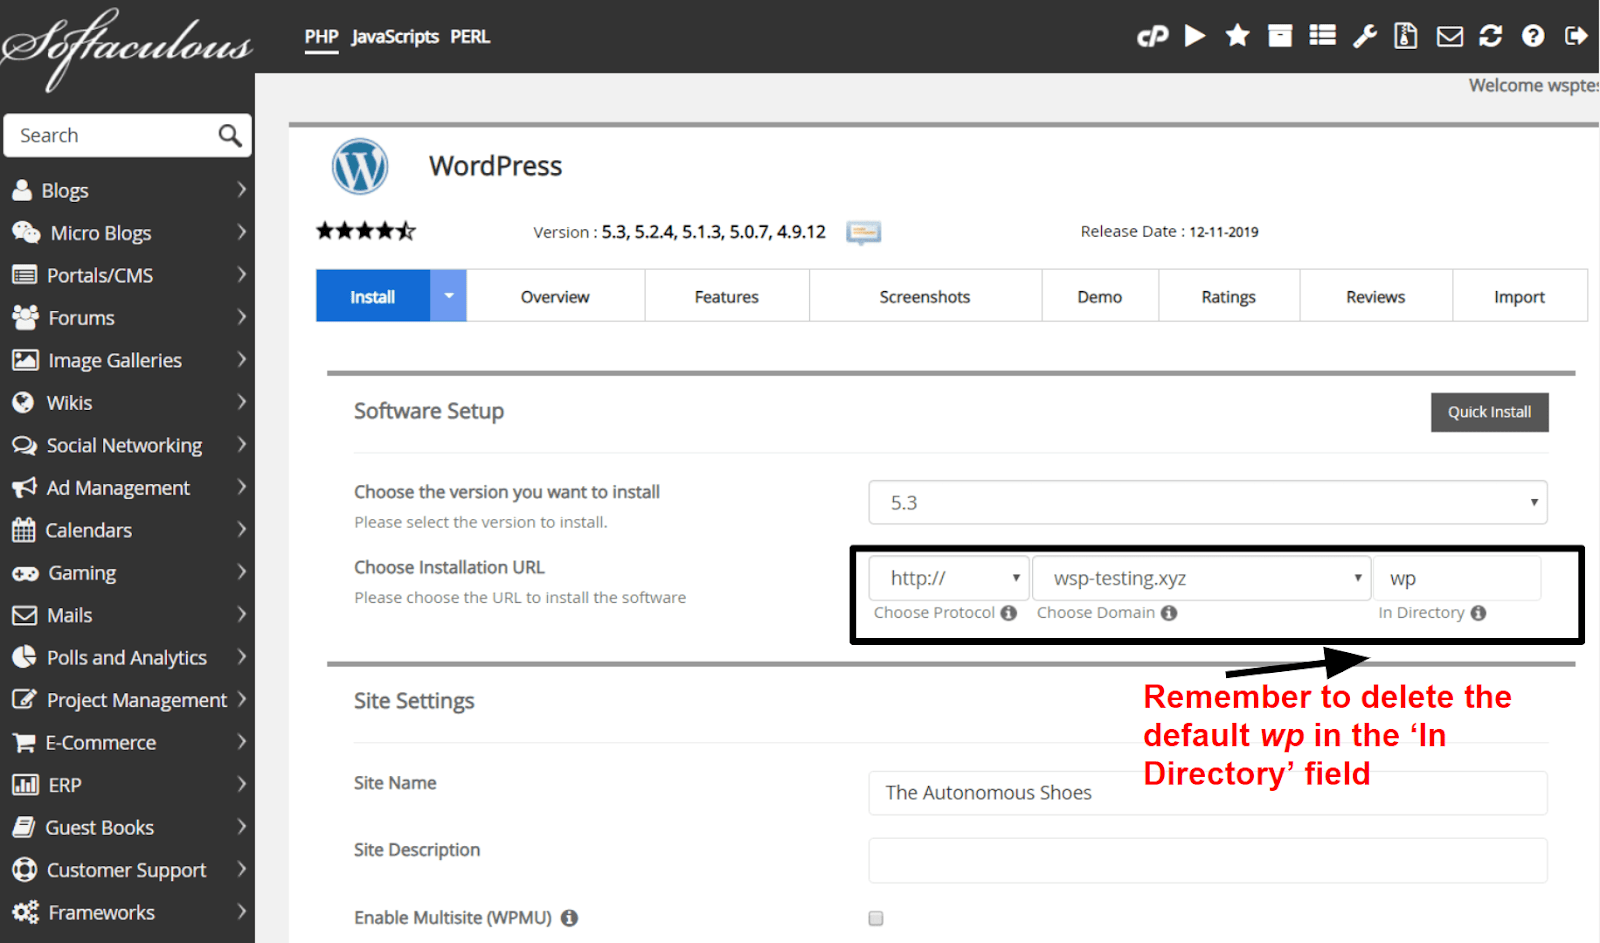 InterServer - WordPress installation